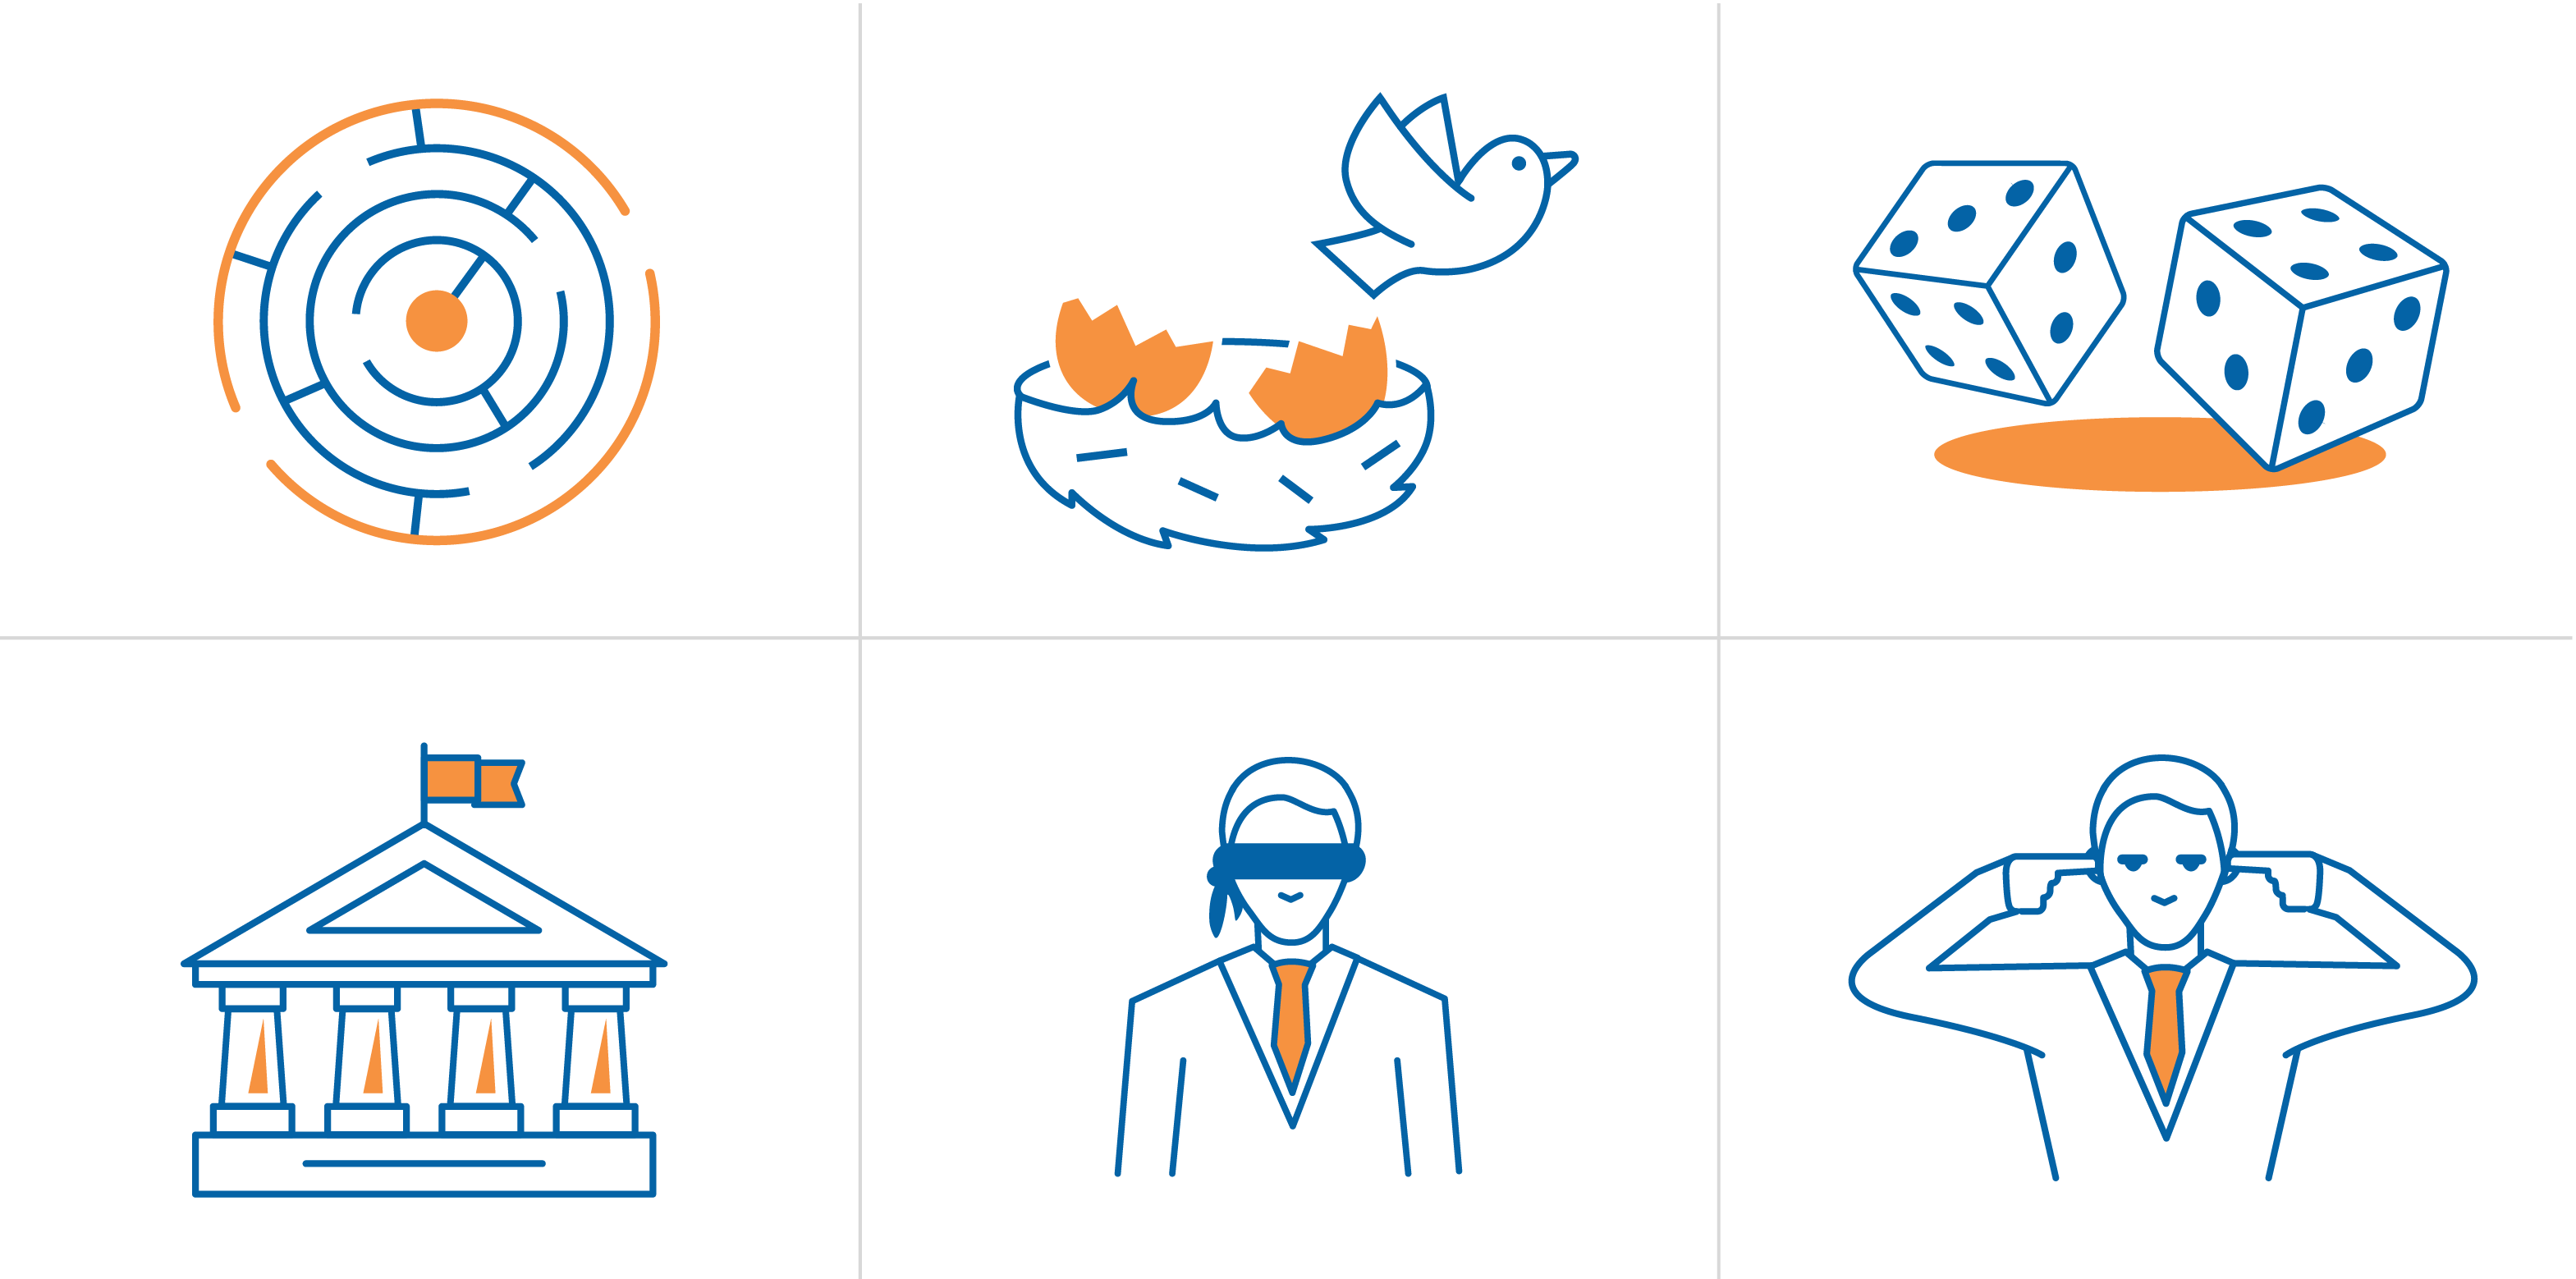 Direxion_Personality_Test_Icons Row 02